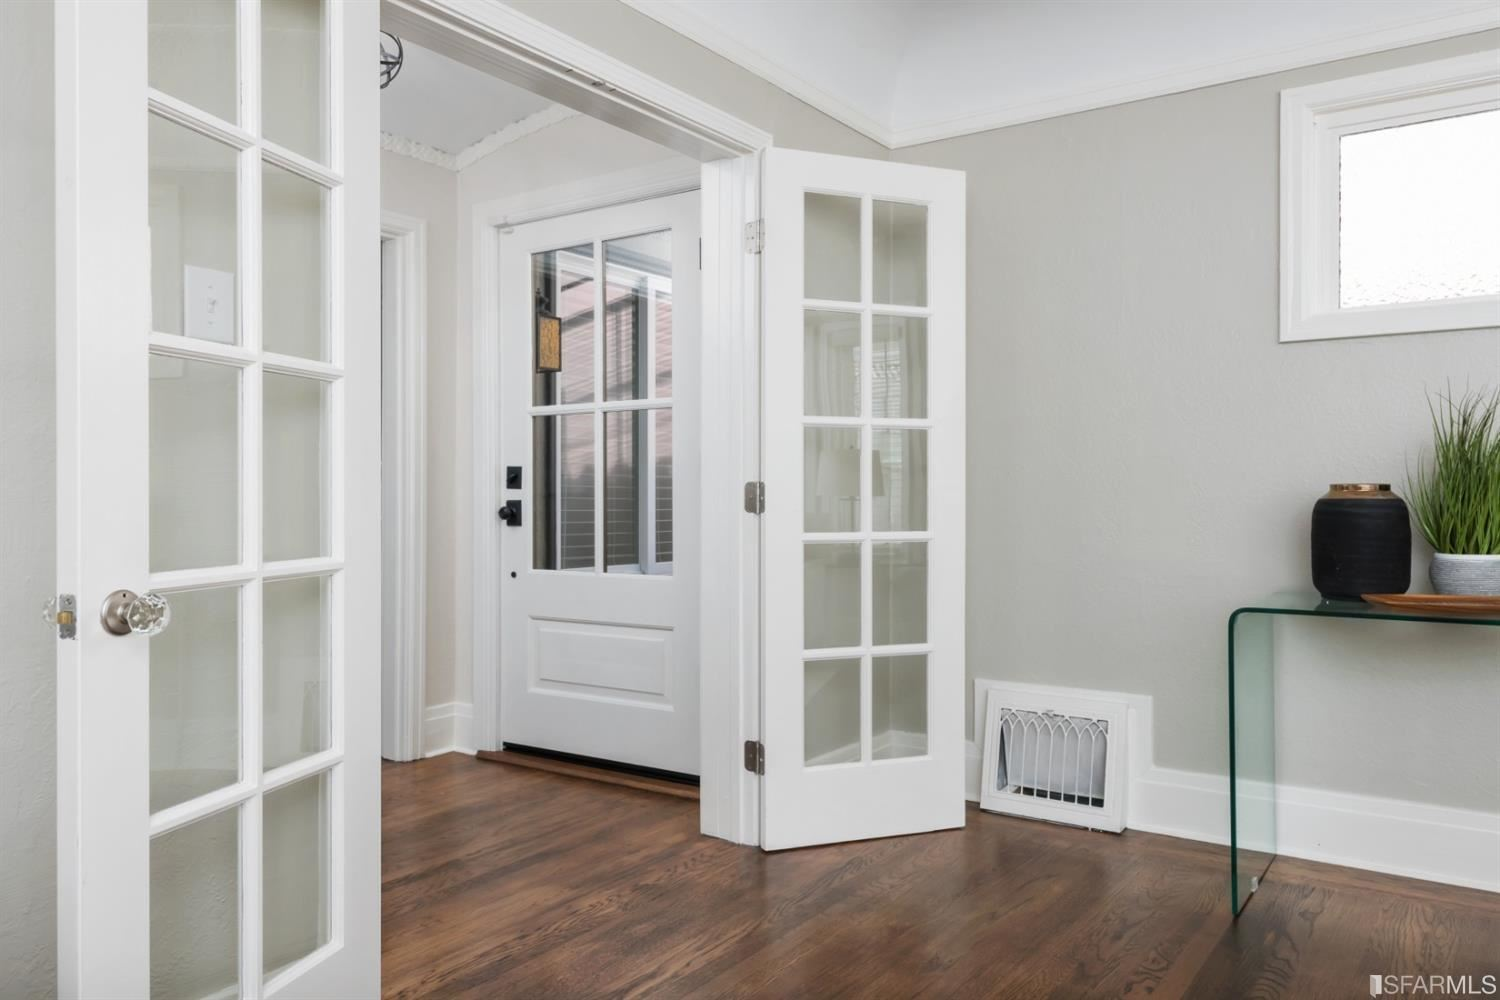 Property Image Of 323 Byxbee Street In San Francisco, Ca